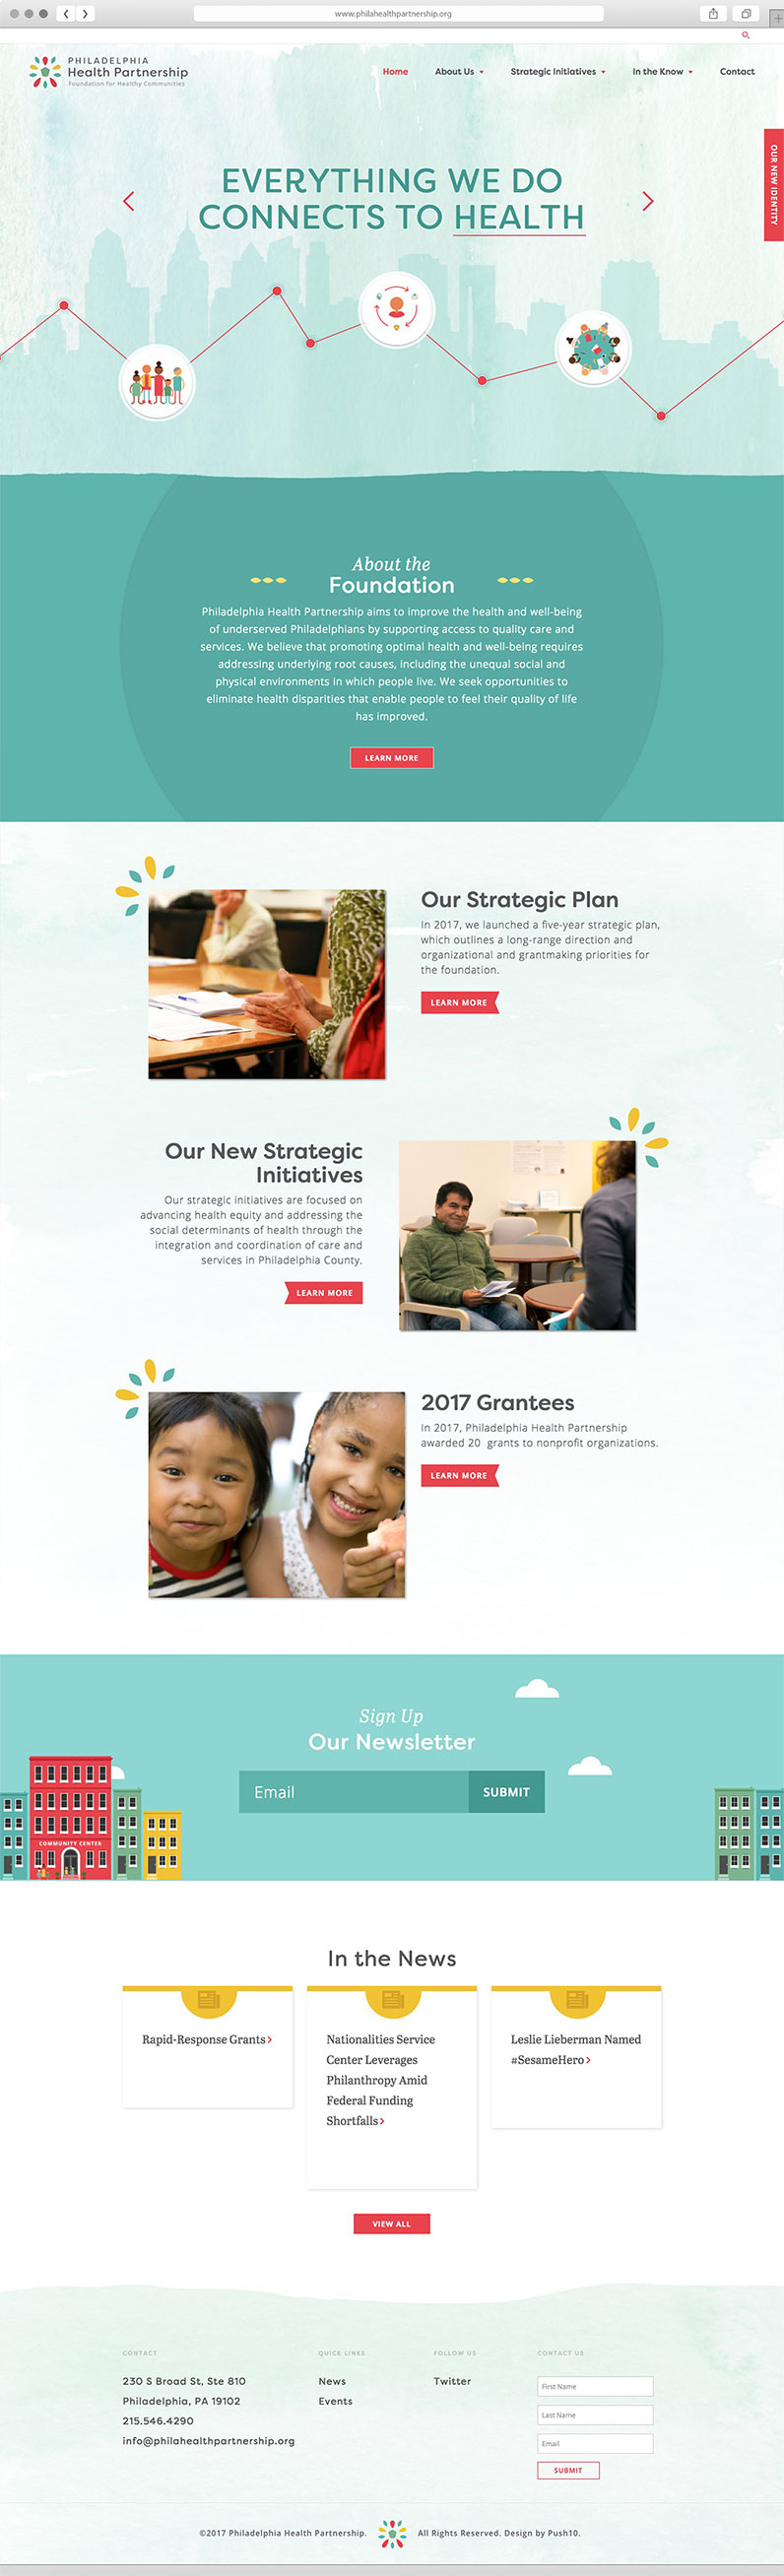 Interface and UX Design for non-profit, Philadelphia Health Partnership created by Push10